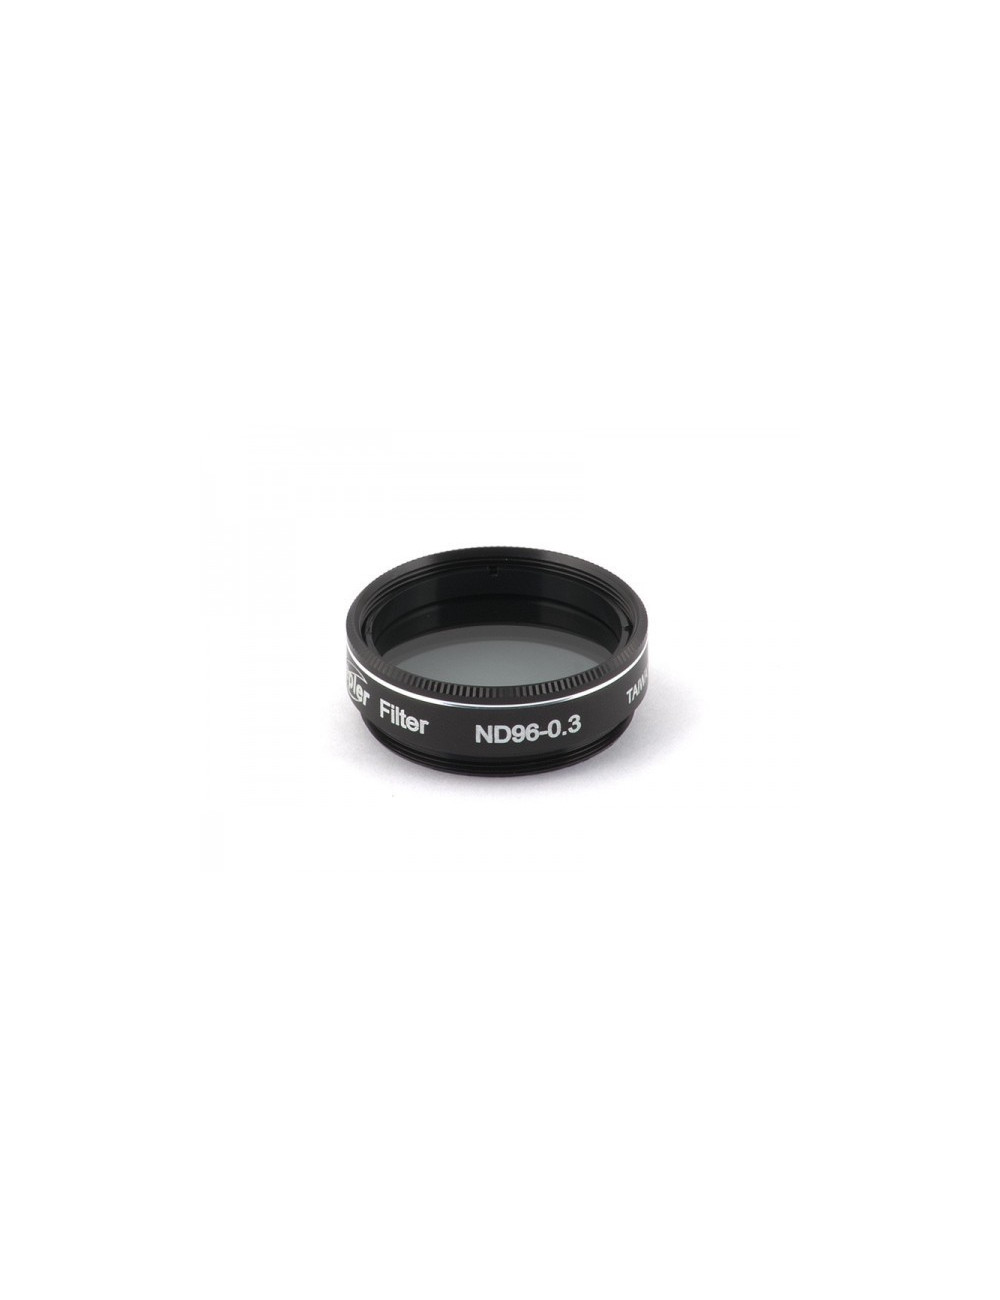 Filtre lunaire ND96 neutre 0.9 (13 %) 31,75 mm